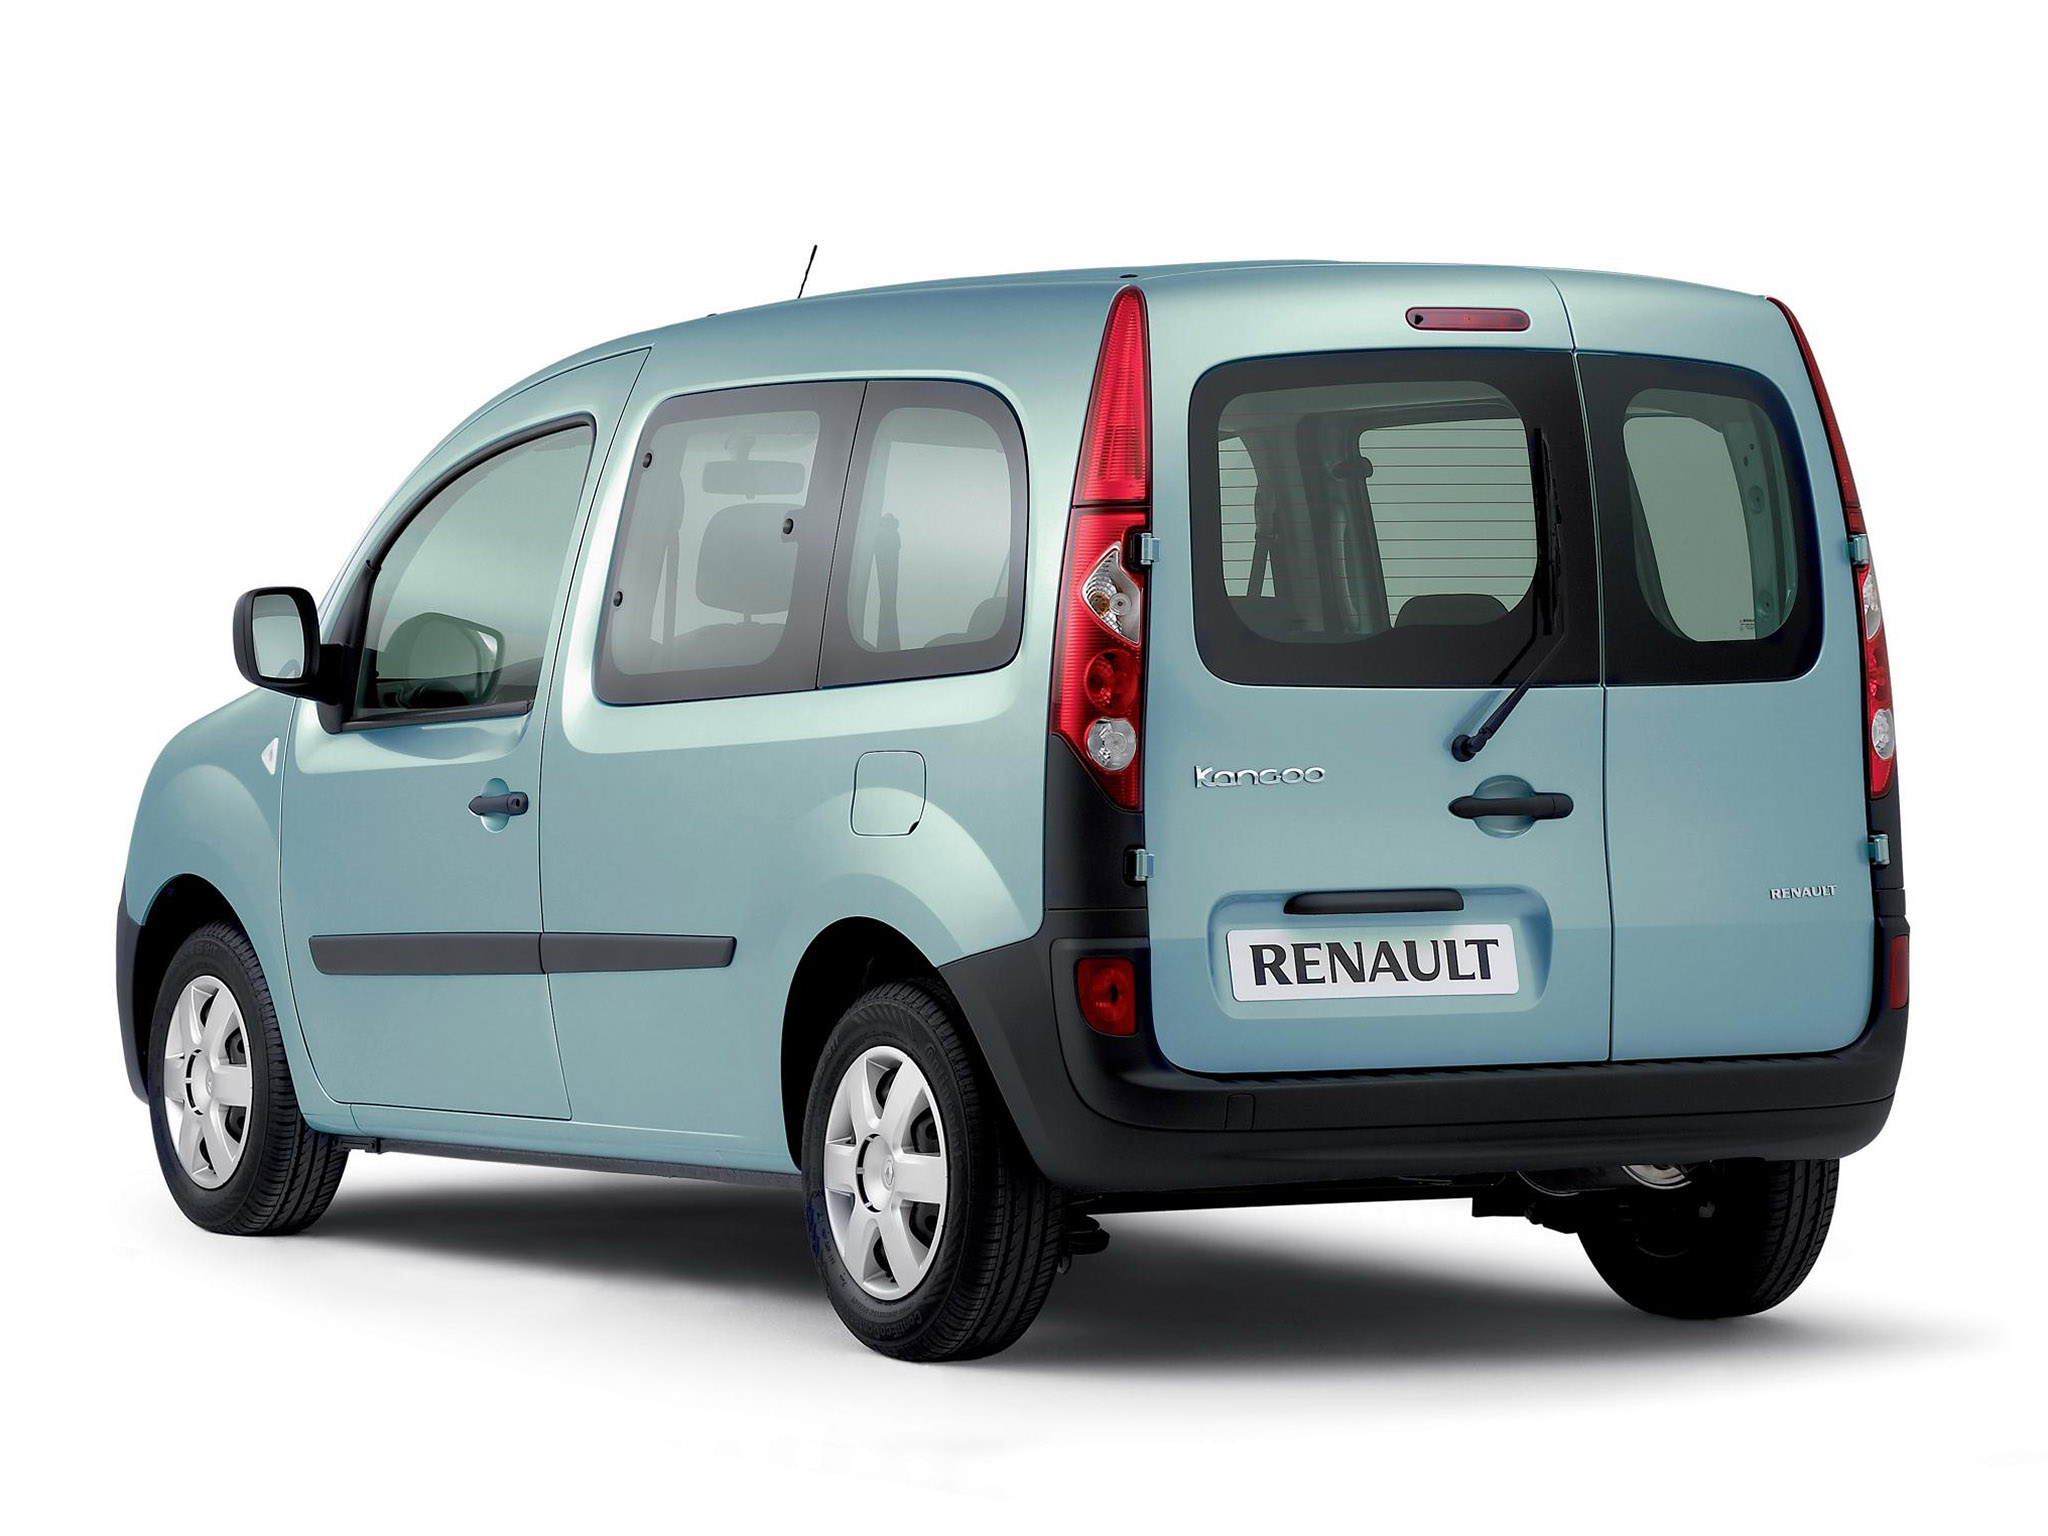 renault kangoo entry version renault kangoo entry version photo 03 car in pictures car photo. Black Bedroom Furniture Sets. Home Design Ideas